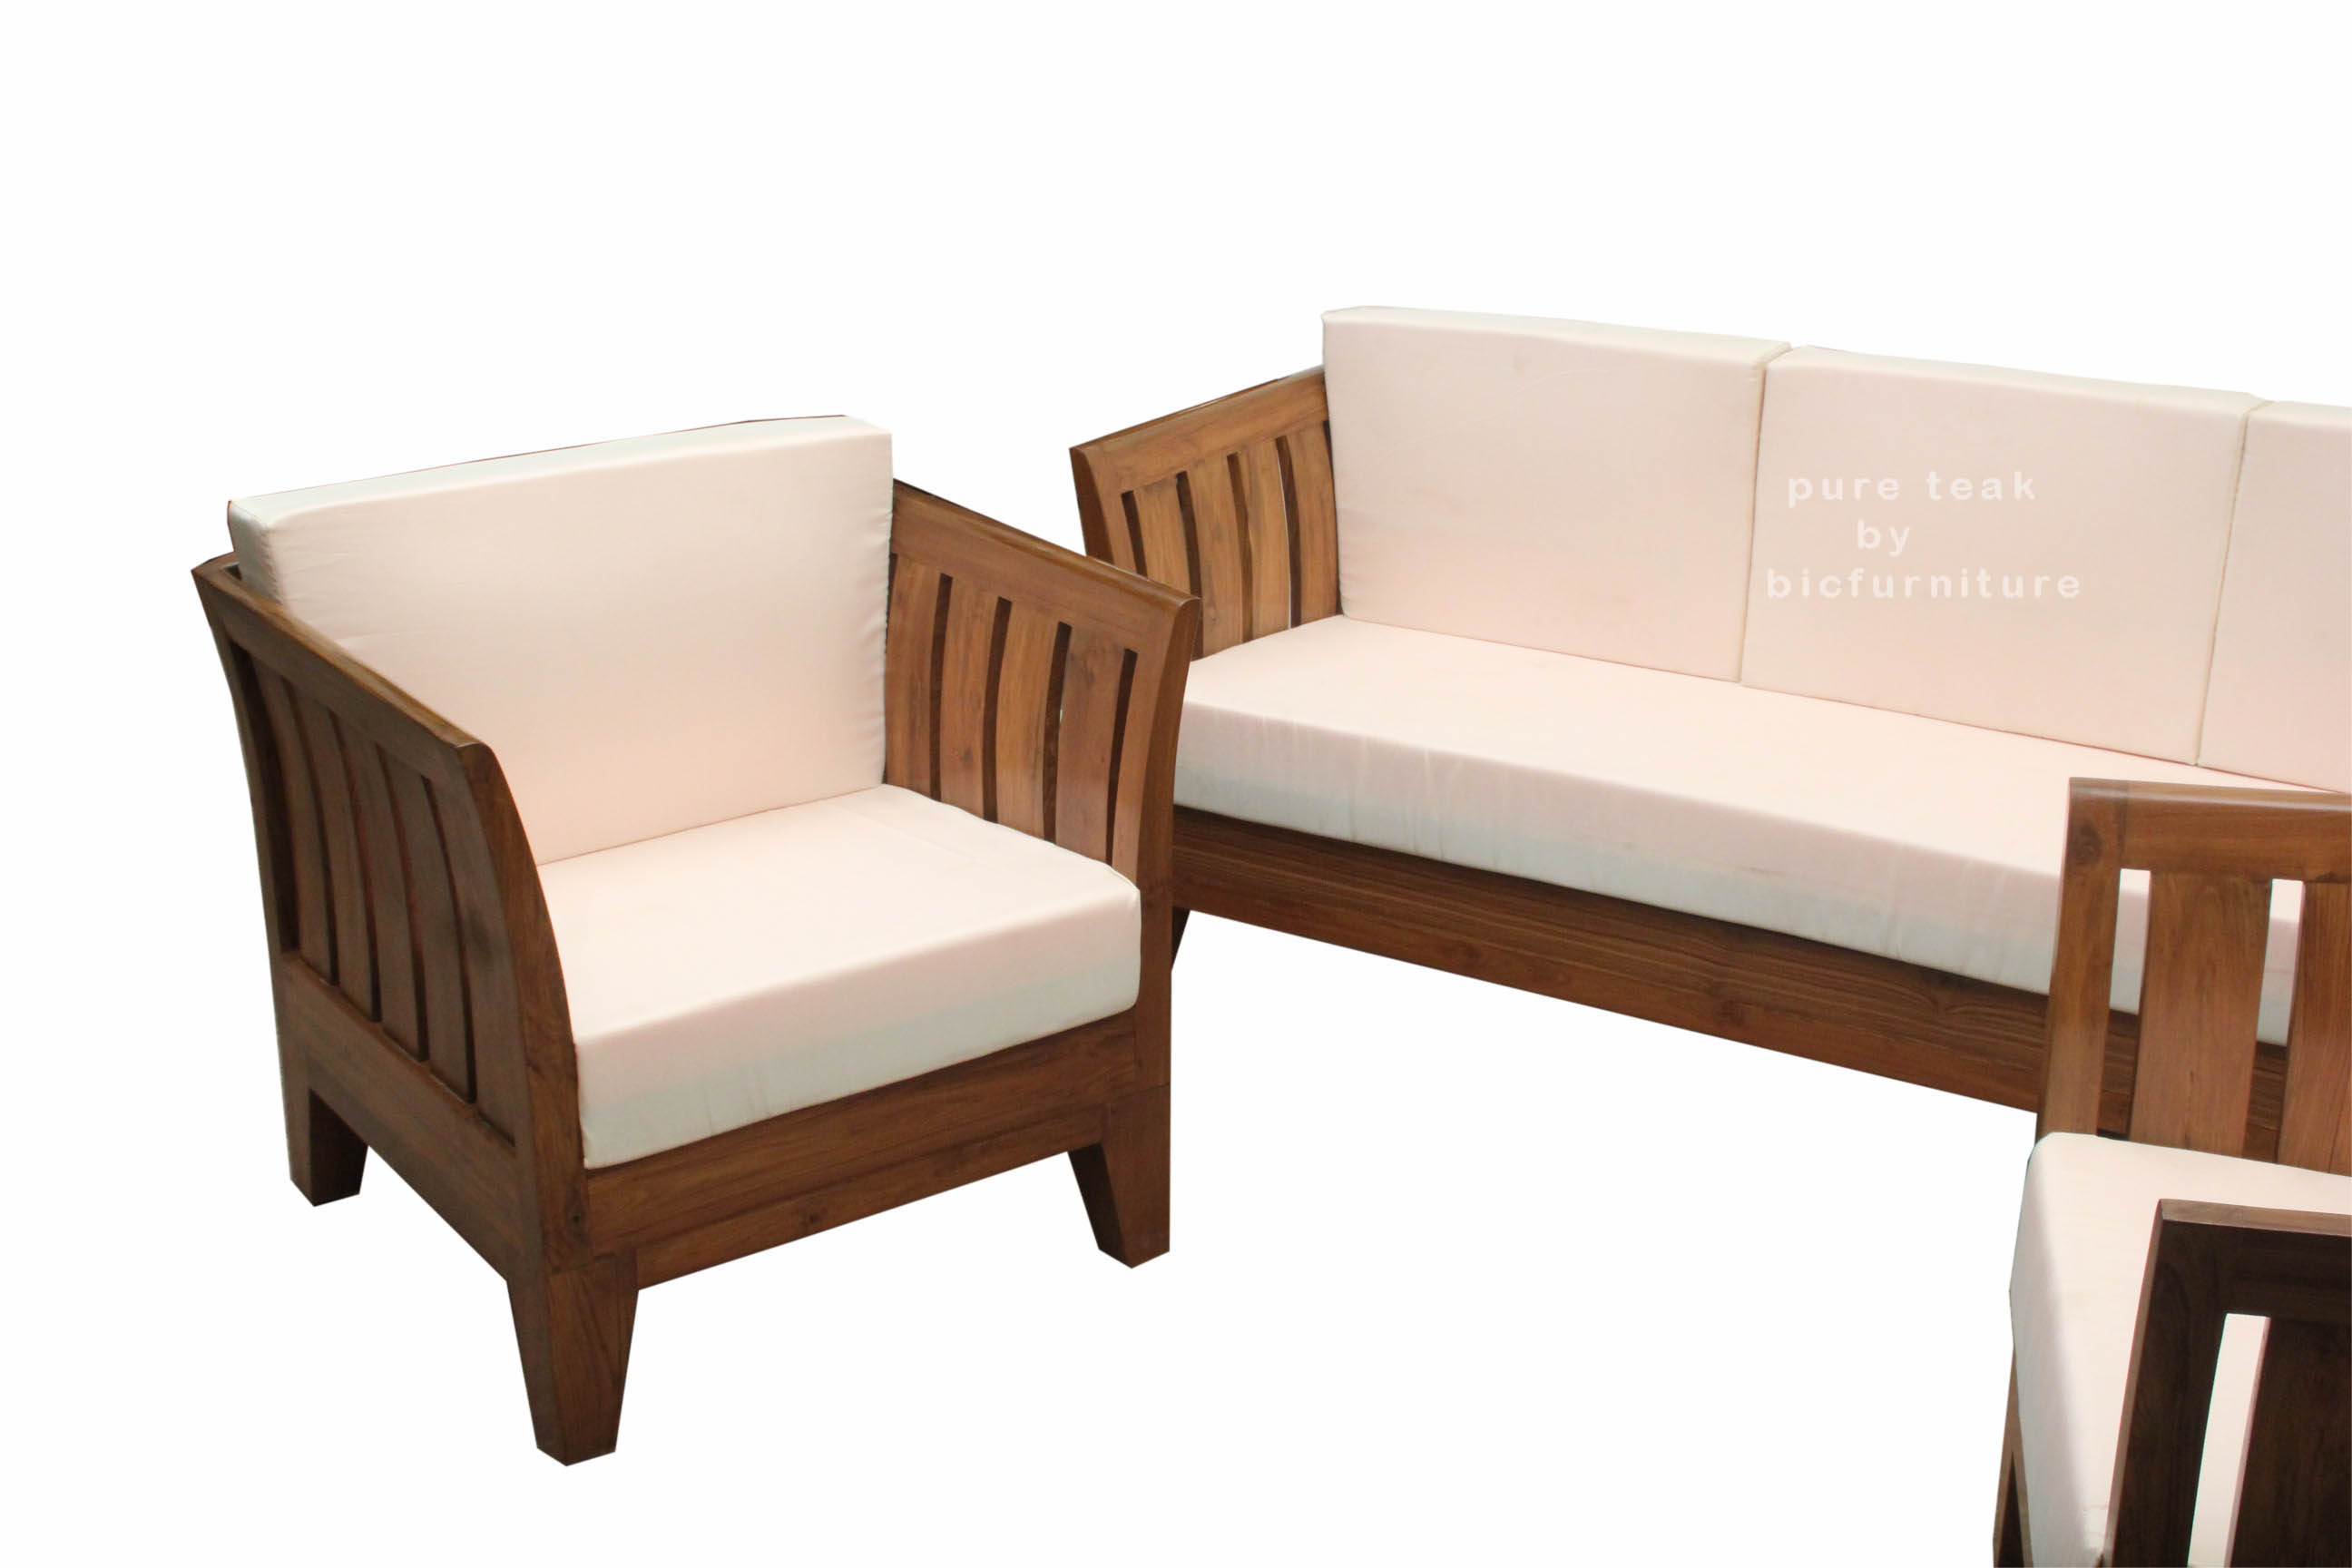 Wooden sofa designs pictures for Wood furniture design sofa set